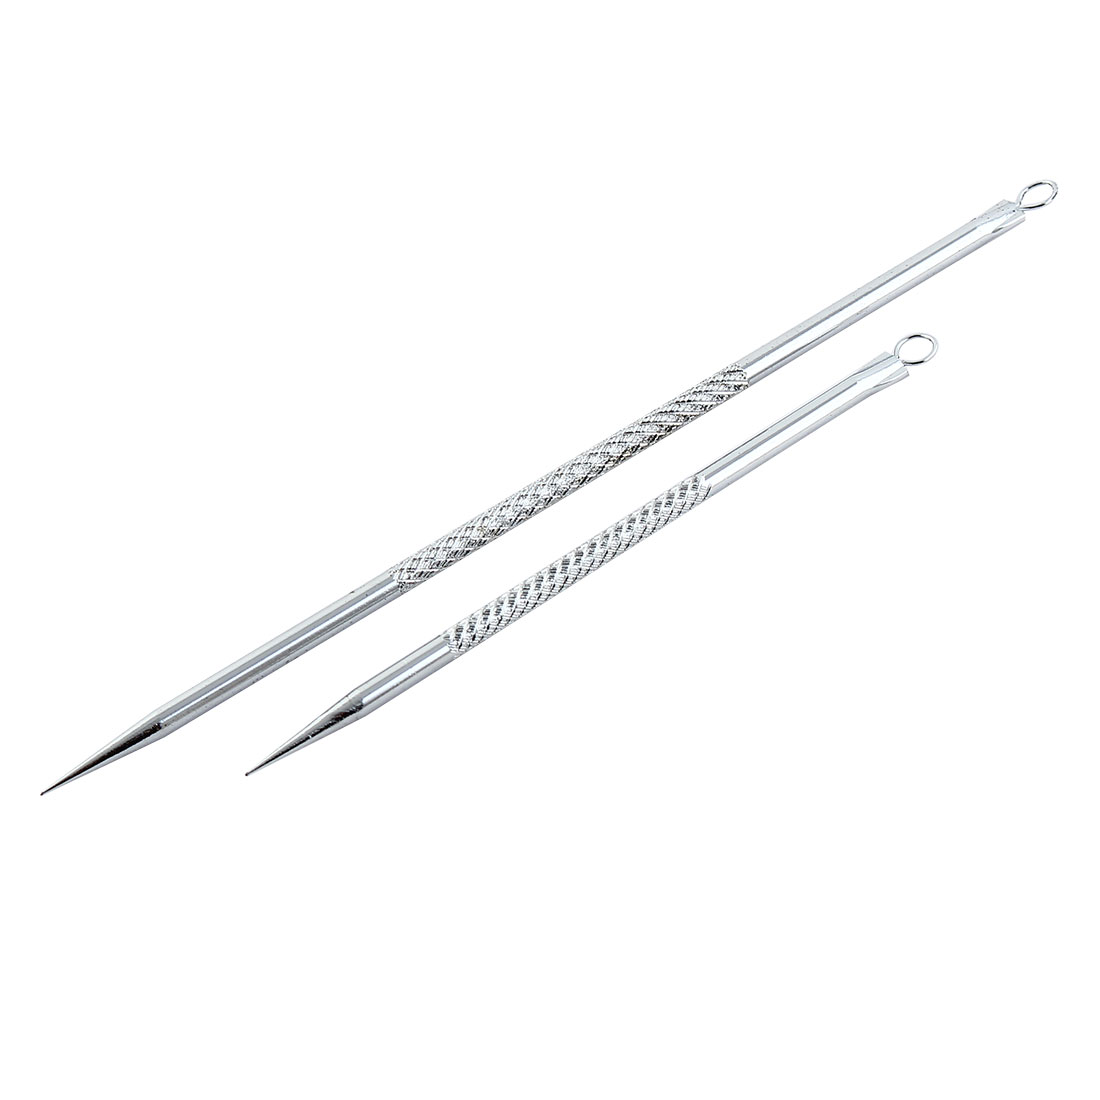 Blackhead Remover Acne Pimple Extractor Needle 2 Pcs